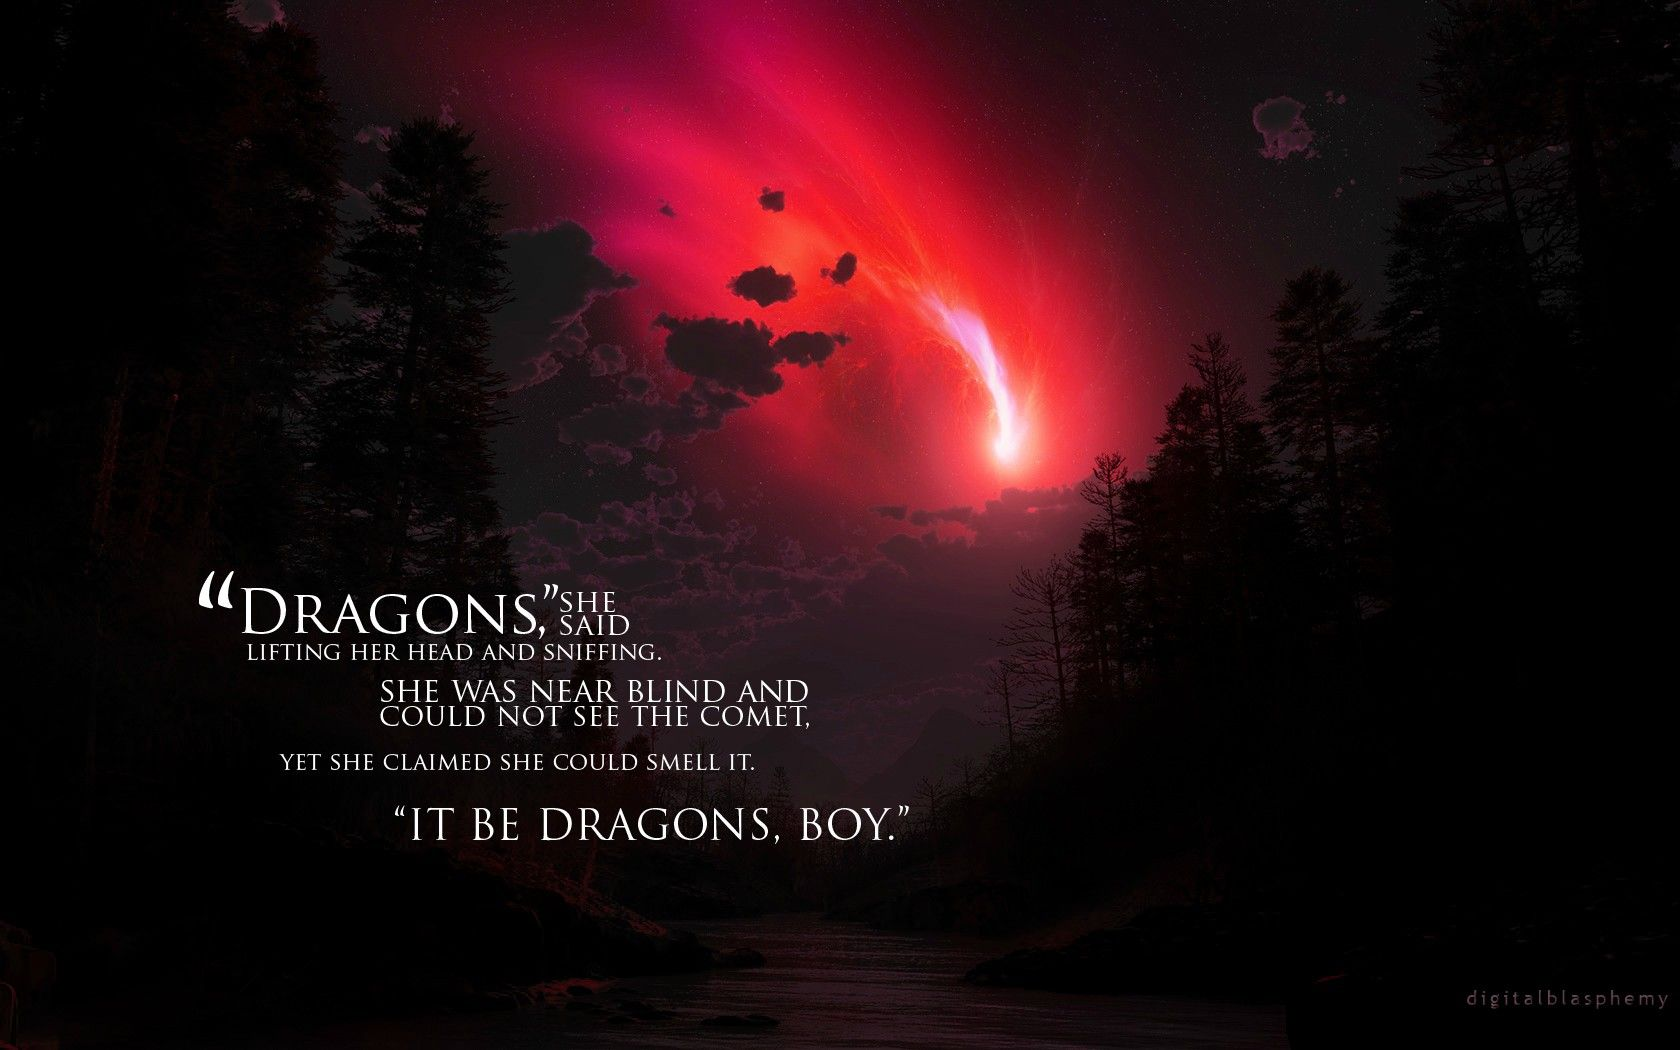 Red Comet Game Of Thrones With Images A Song Of Ice And Fire